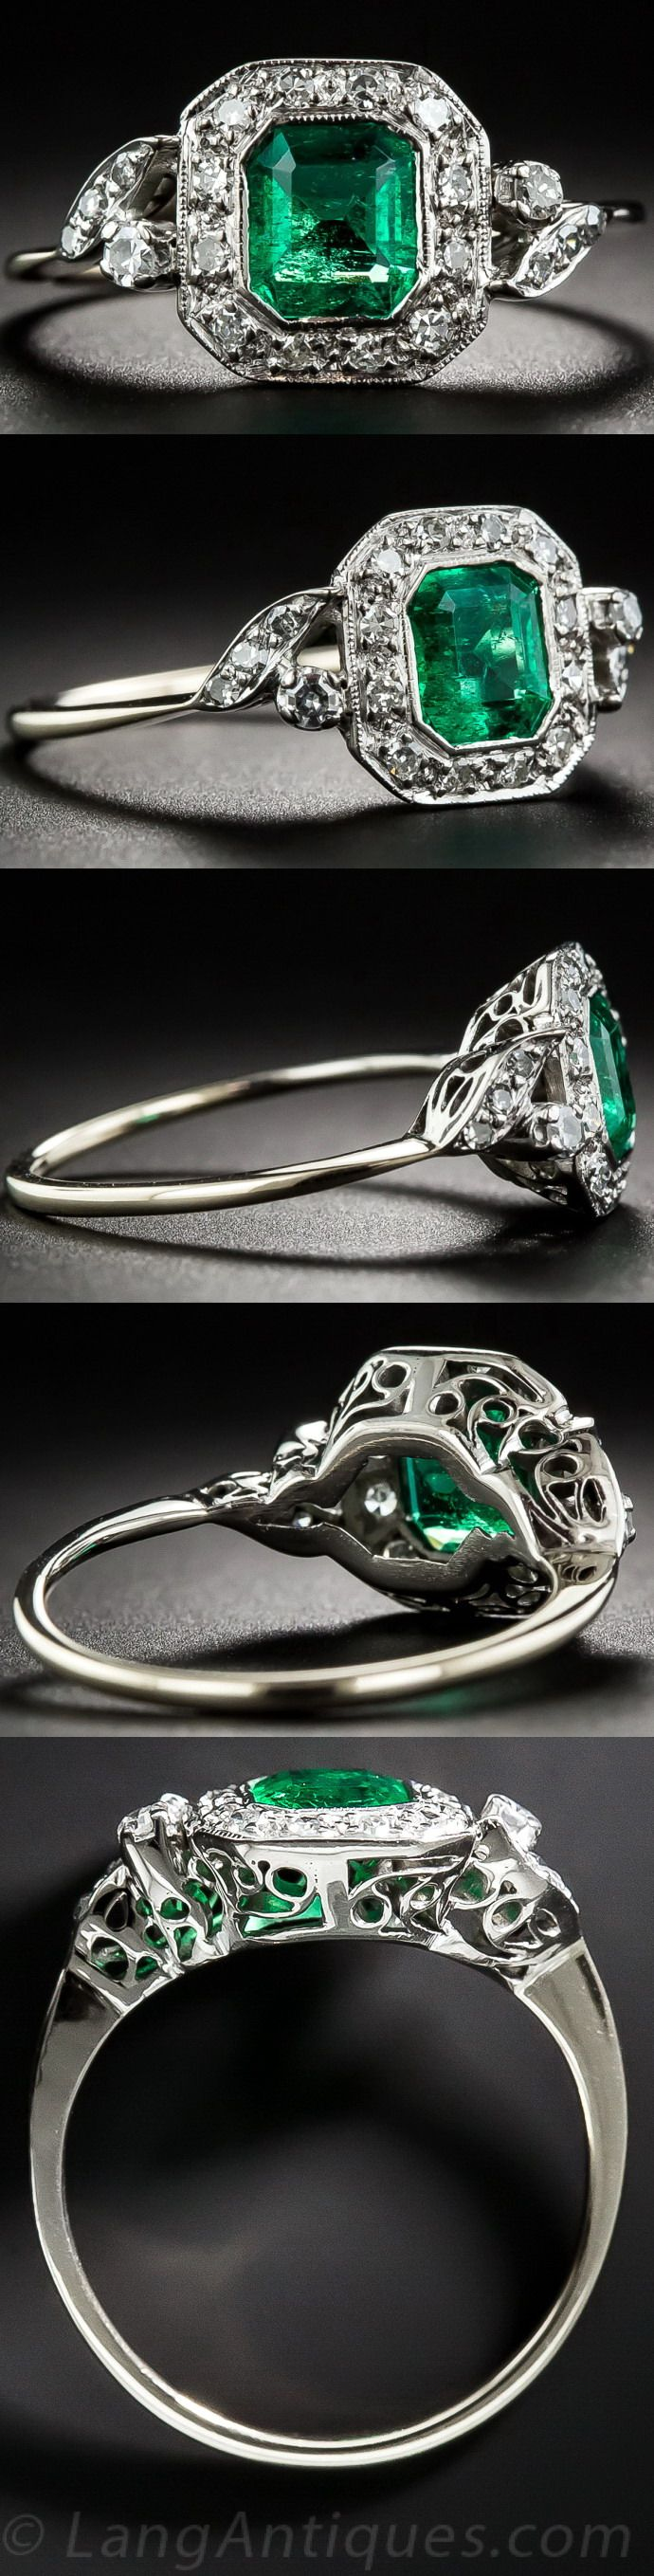 Art Deco Emerald and Diamond Ring. A rich and radiant Colombian emerald, weighing .65 carat, beams from within a sparkling diamond frame bookended by diamond-set flares on each shoulder. This classic Art Deco beauty is finished with a lovely scroll work under gallery. Ring size 7 1/4.